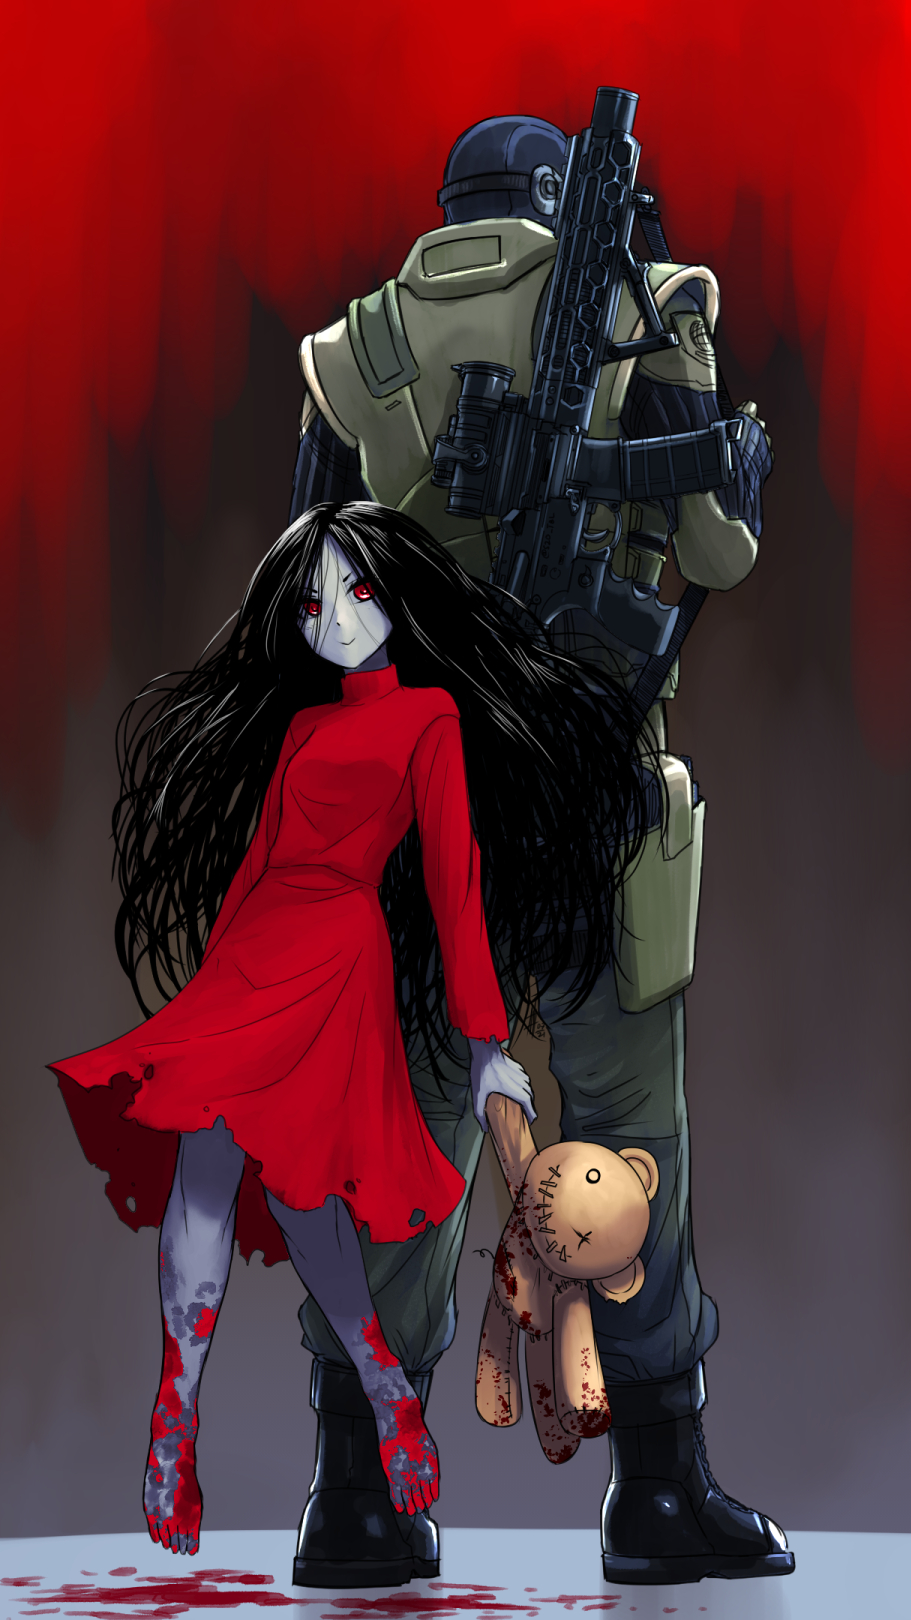 1boy 1girl alma_(f.e.a.r.) assault_rifle back-to-back balaclava barefoot black_hair blood blood_splatter breasts colored_skin dress f.e.a.r. floating grey_skin gun height_difference highres holding holding_stuffed_toy long_dress long_hair messy_hair military_operator mother_and_son parted_hair point_man_(f.e.a.r.) red_dress red_eyes rifle small_breasts stuffed_animal stuffed_toy substance20 teddy_bear torn_clothes torn_dress turtleneck_dress weapon weapon_on_back